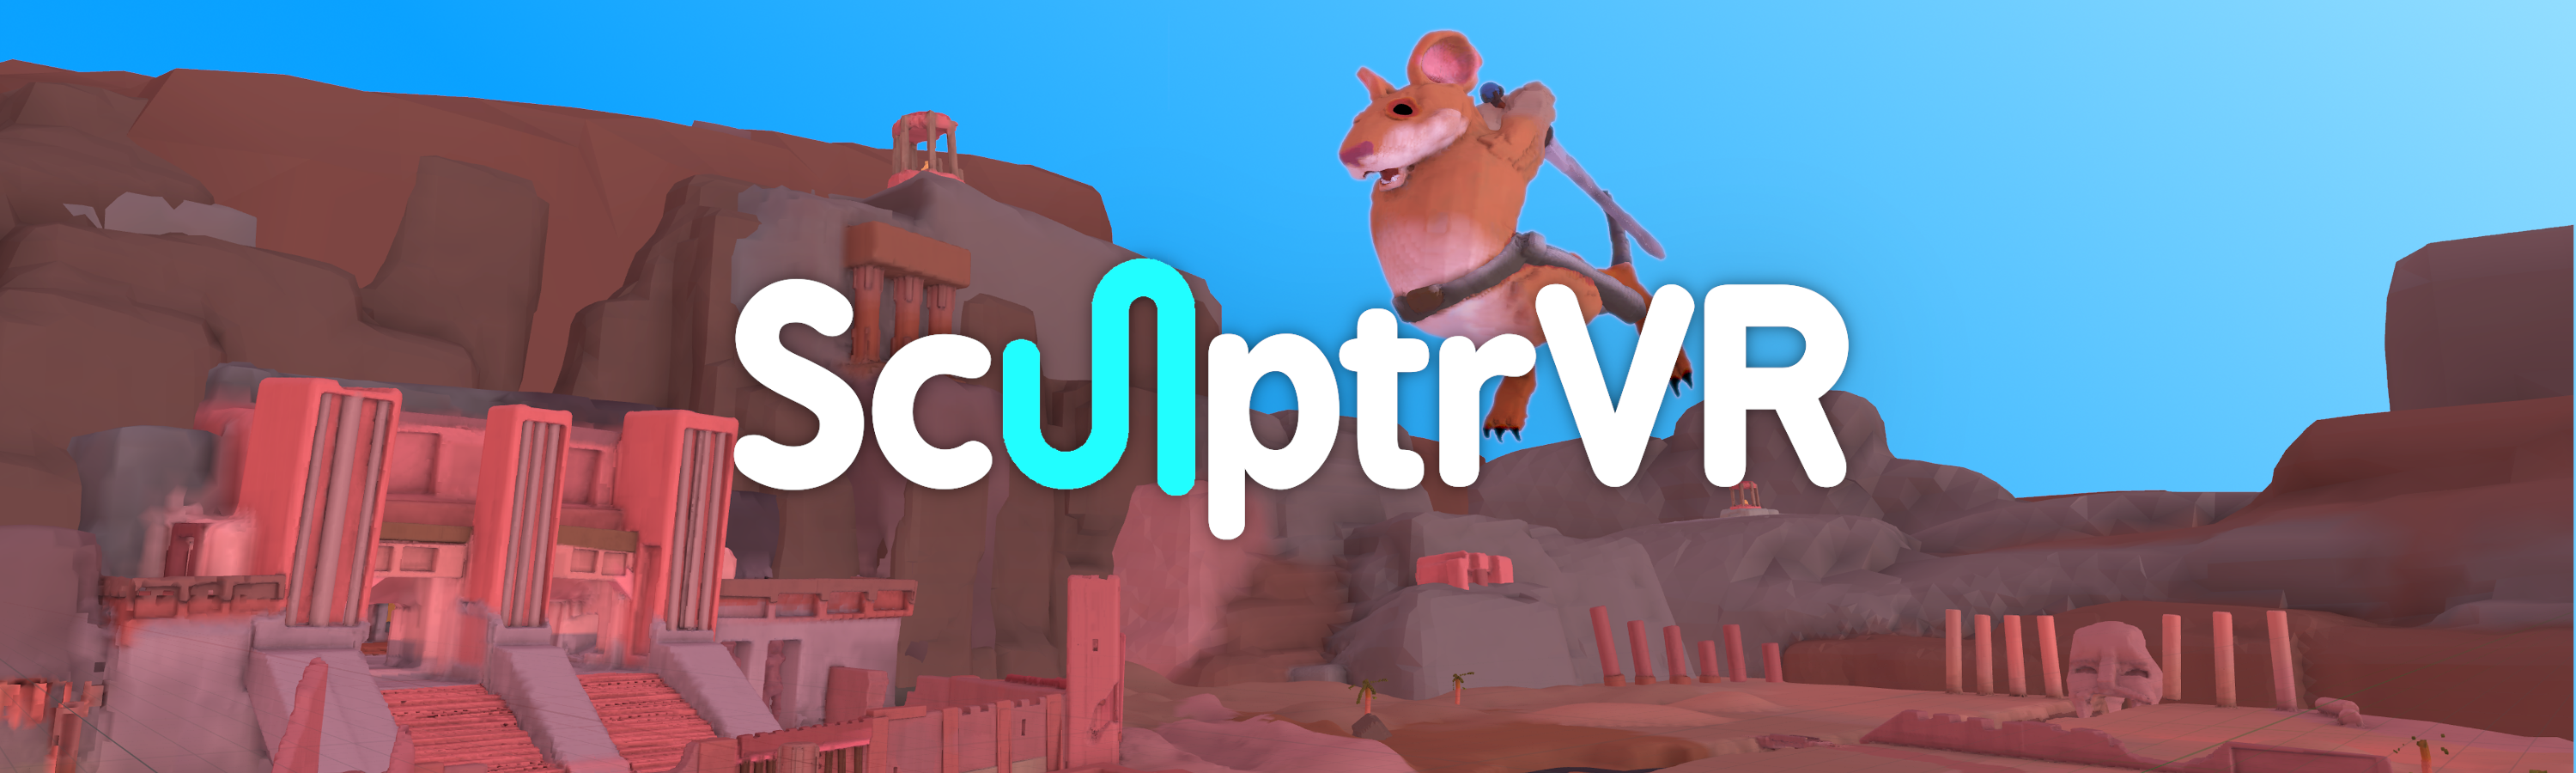 SculptrVR mouse hero